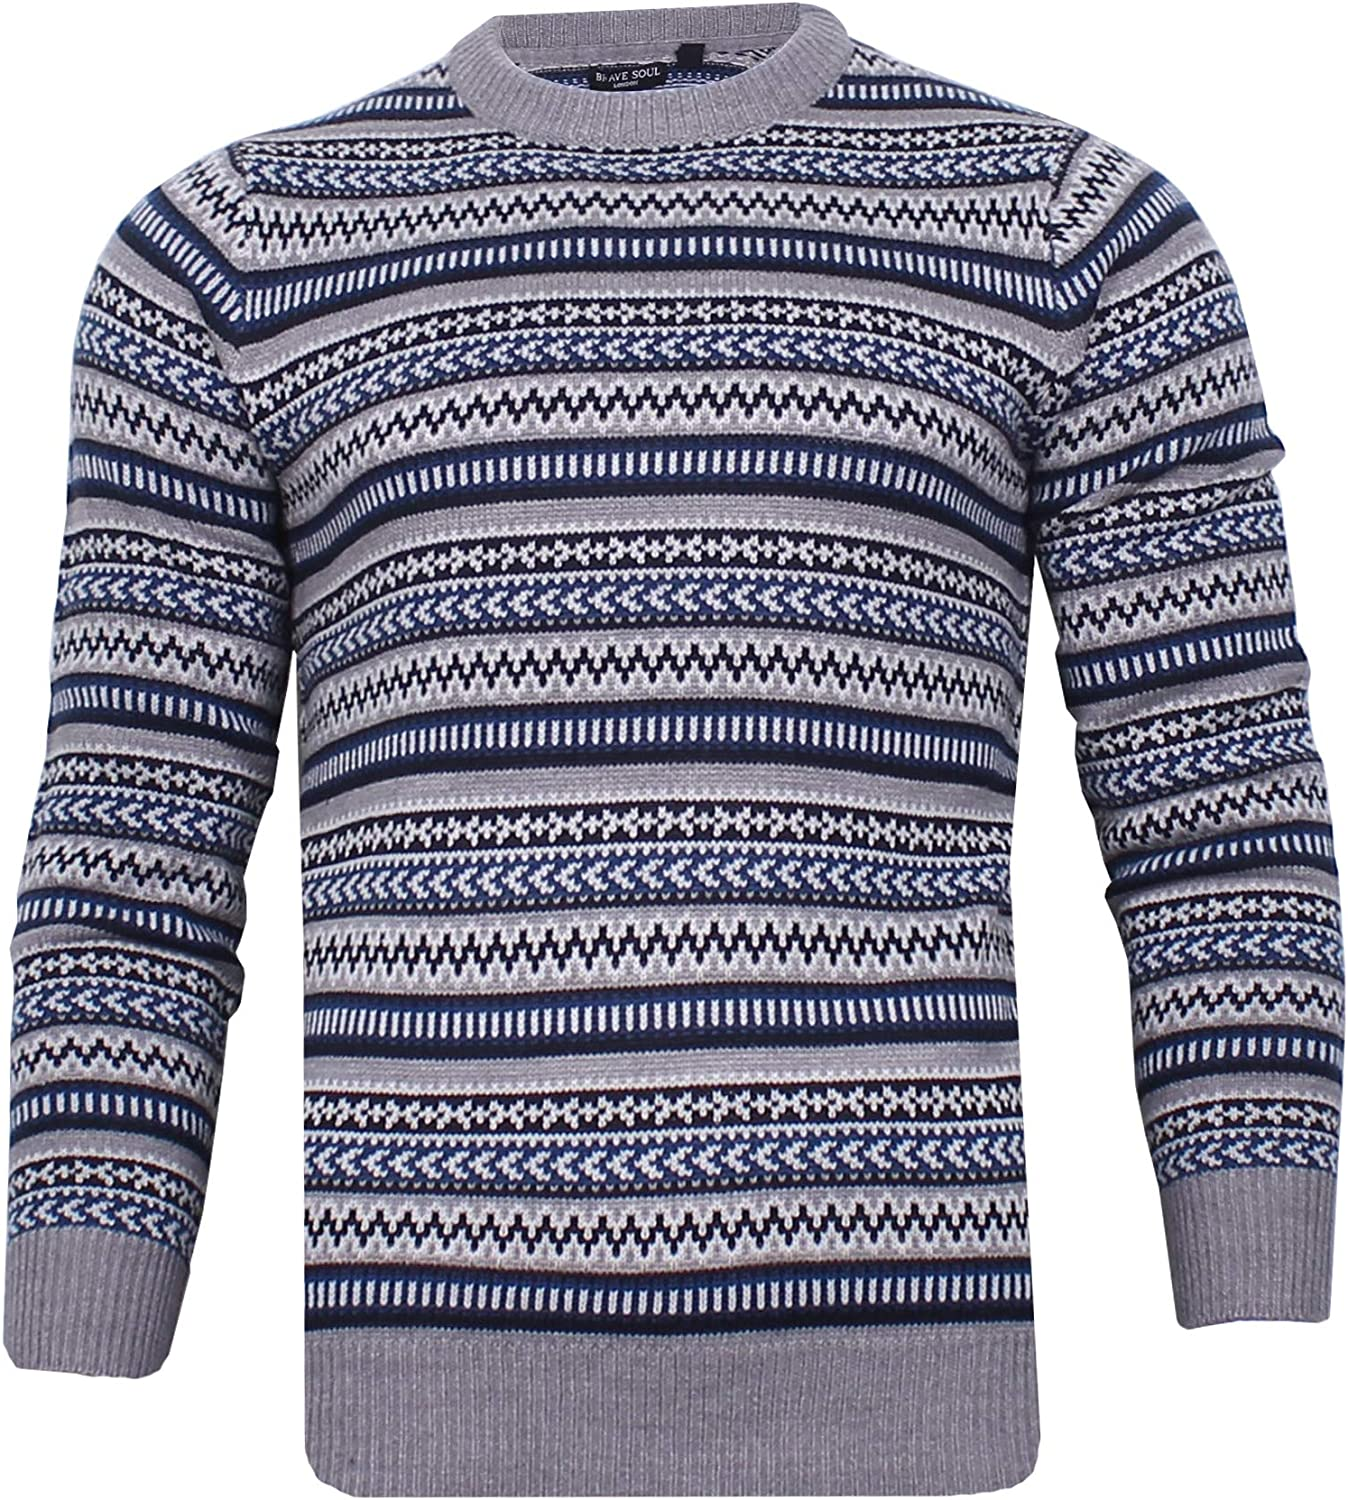 1920s Men's Fashion UK | Peaky Blinders Clothing BRAVE SOUL Mens Knitted Fairisle Jumper Christmas Crew Neck Winter Knitwear £17.99 AT vintagedancer.com